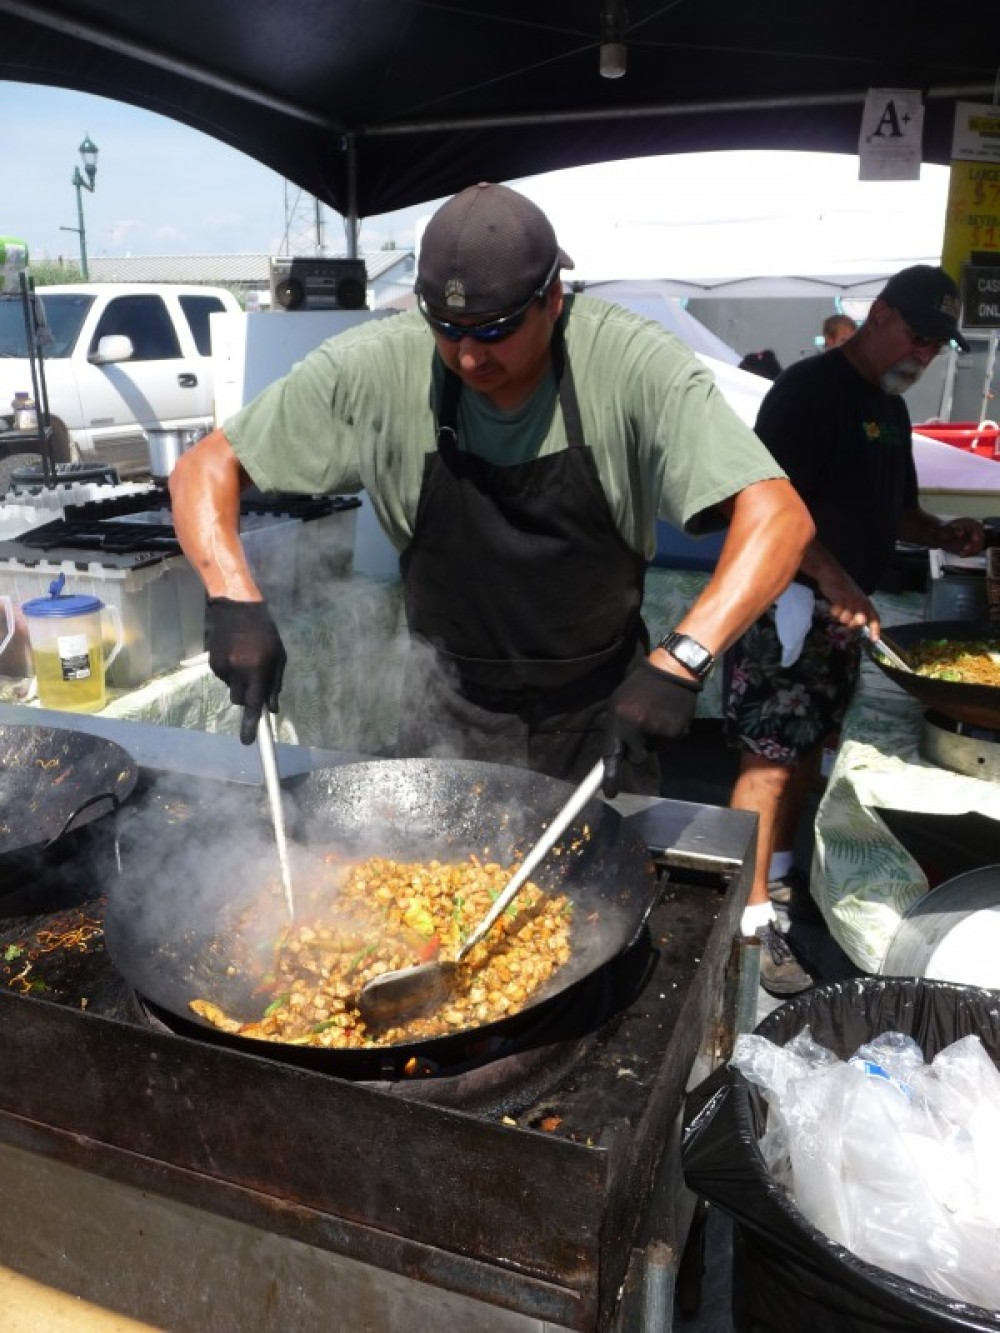 Good eats! You won't go hungry at Huckleberry Days! – Sarah Stewart